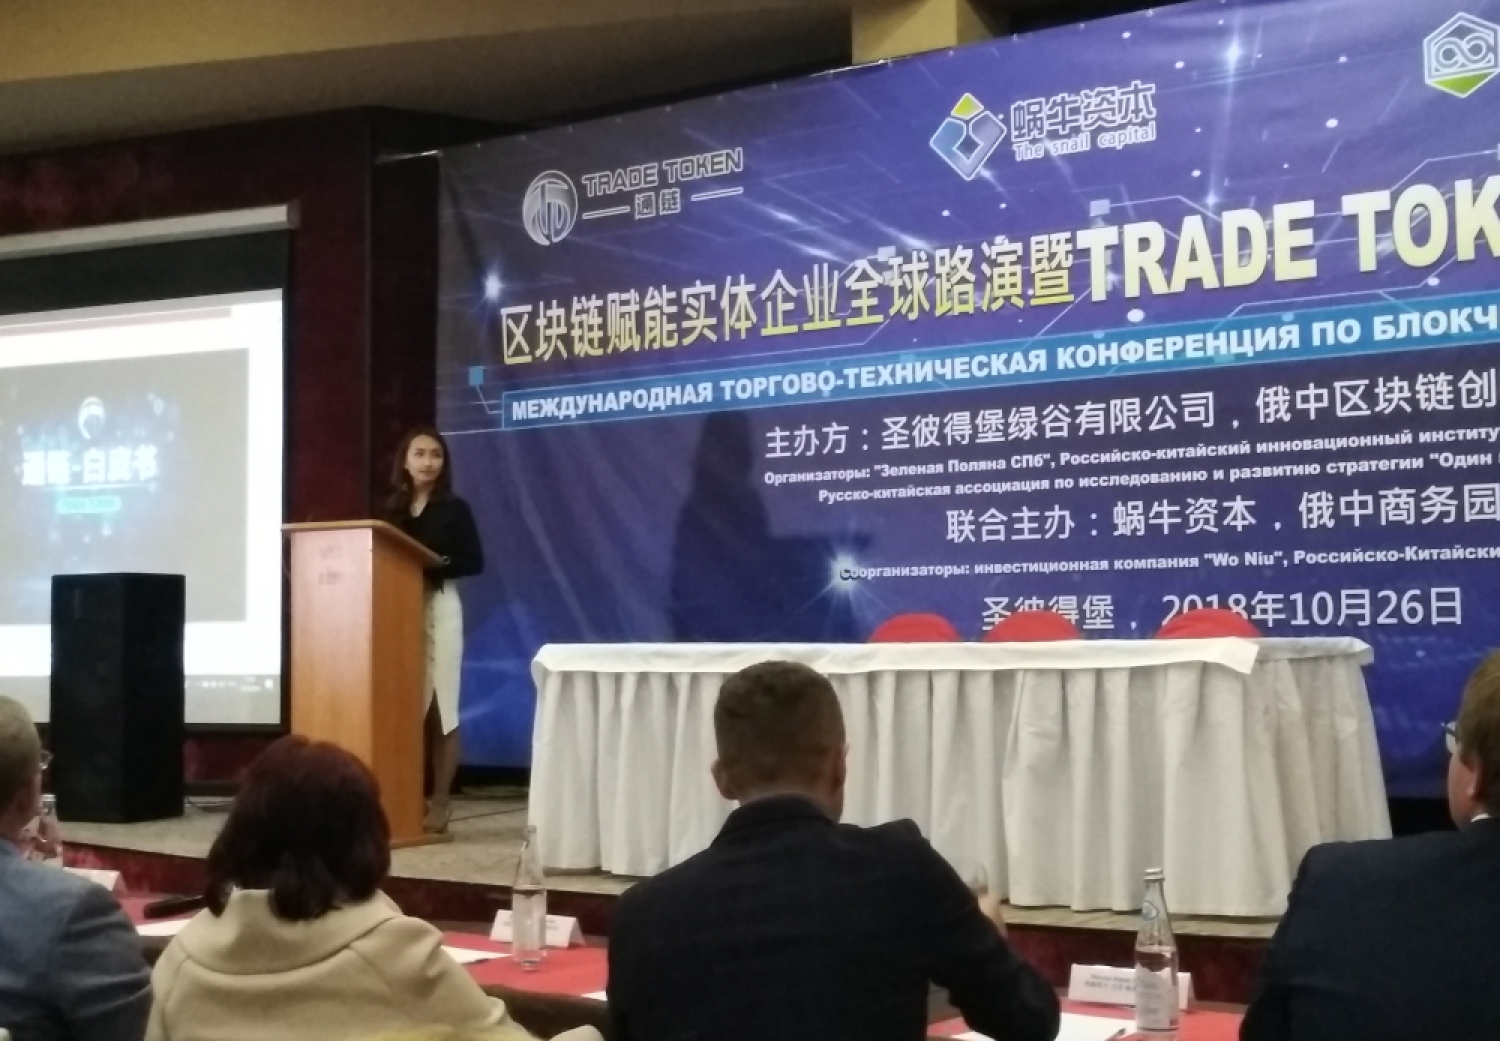 INTERNATIONAL TRADE AND TECHNICAL CONFERENCE ON BLOCKCHAIN TECHNOLOGIES TRADE TOKEN